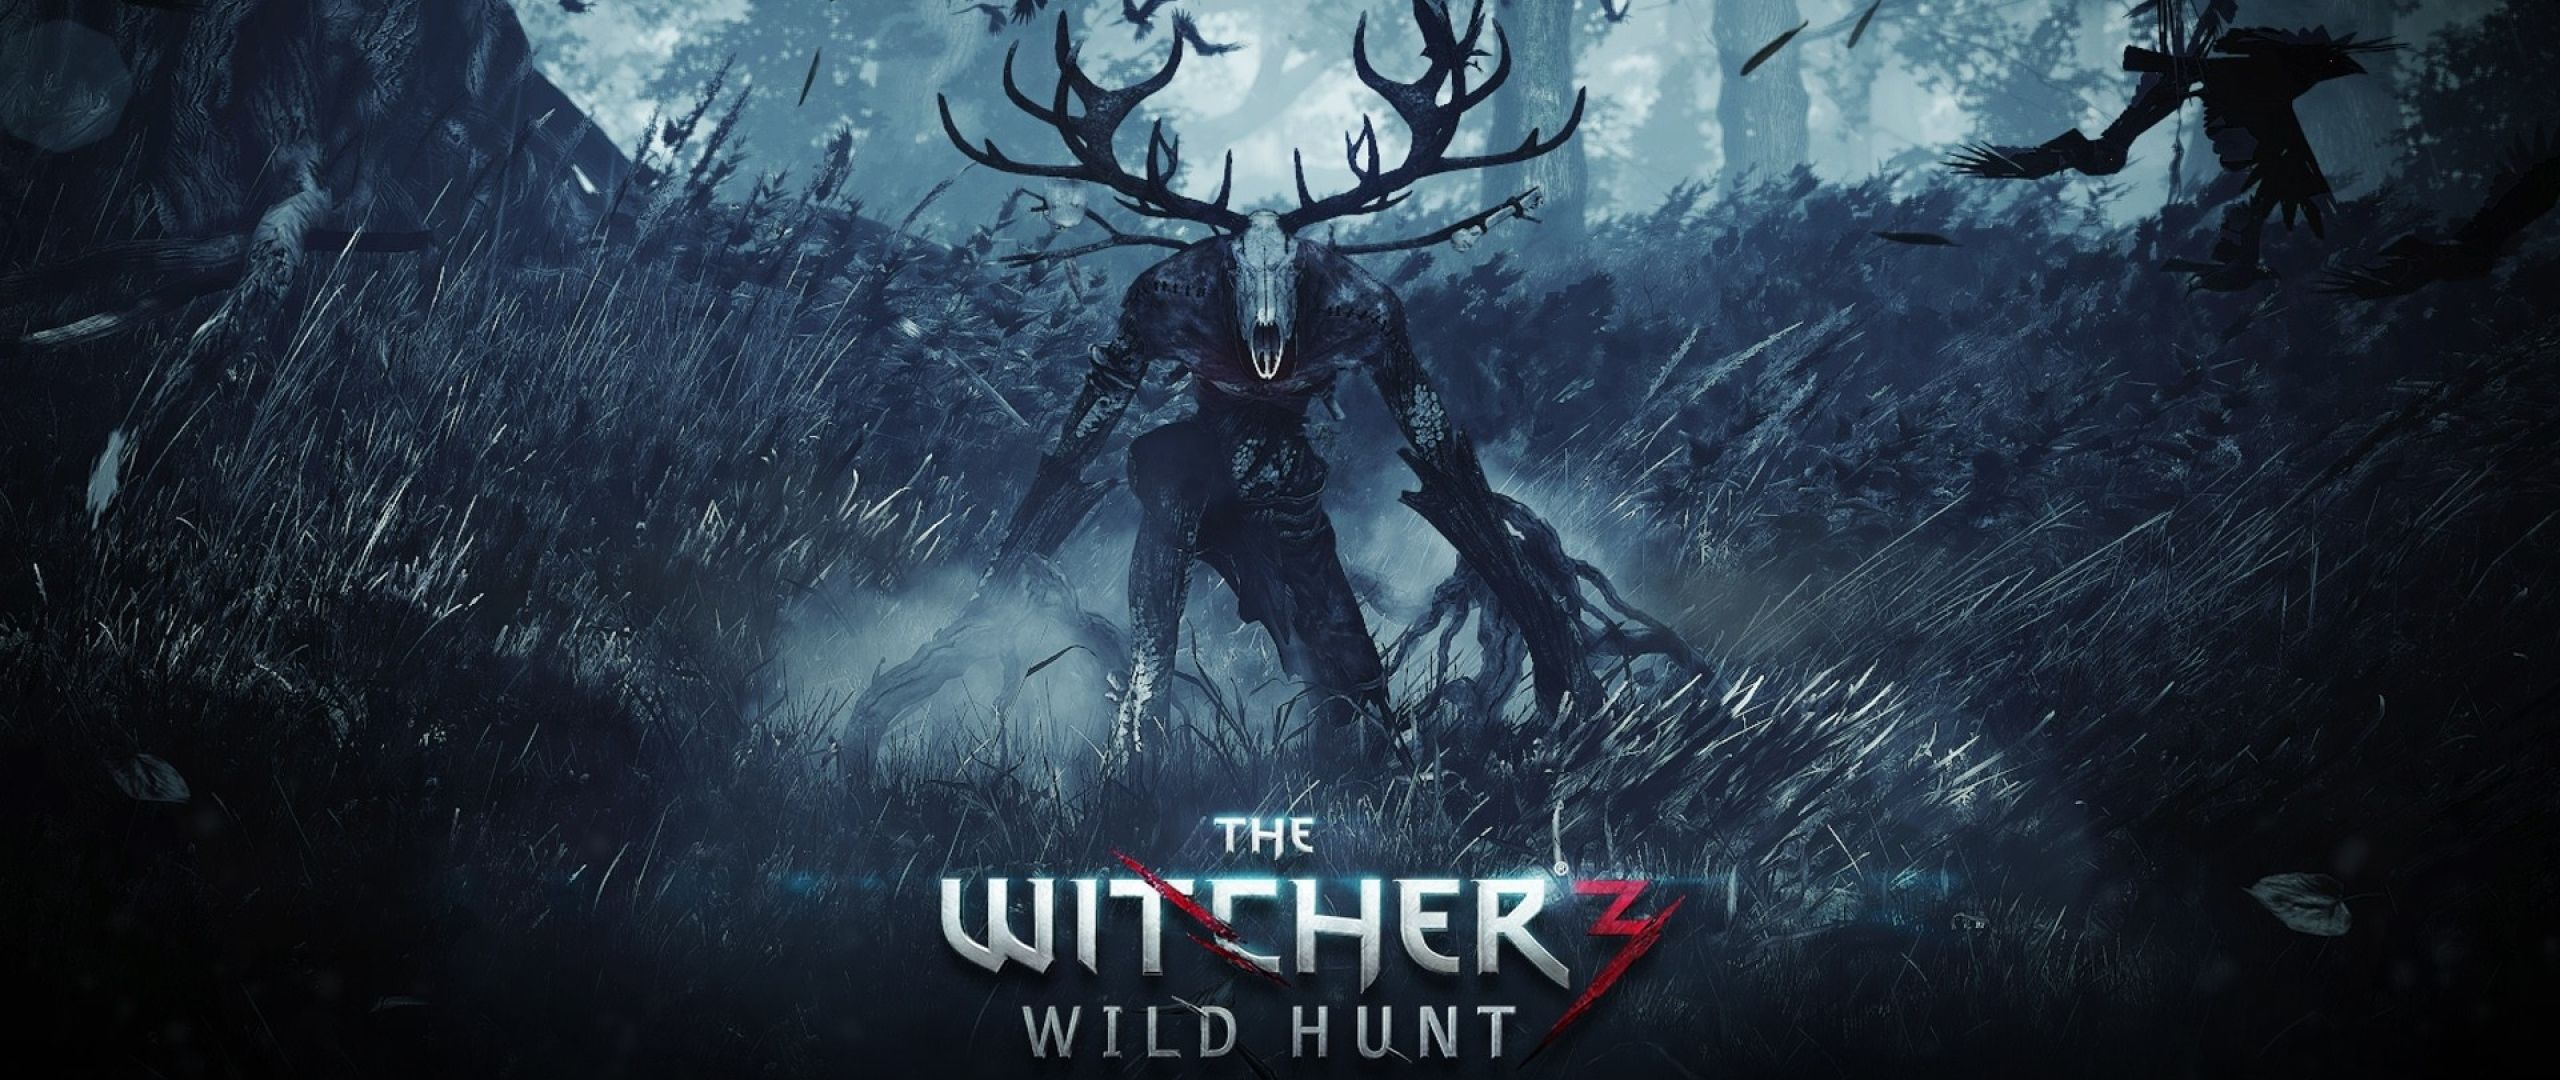 The Witcher 3 Wild Hunt Wallpapers